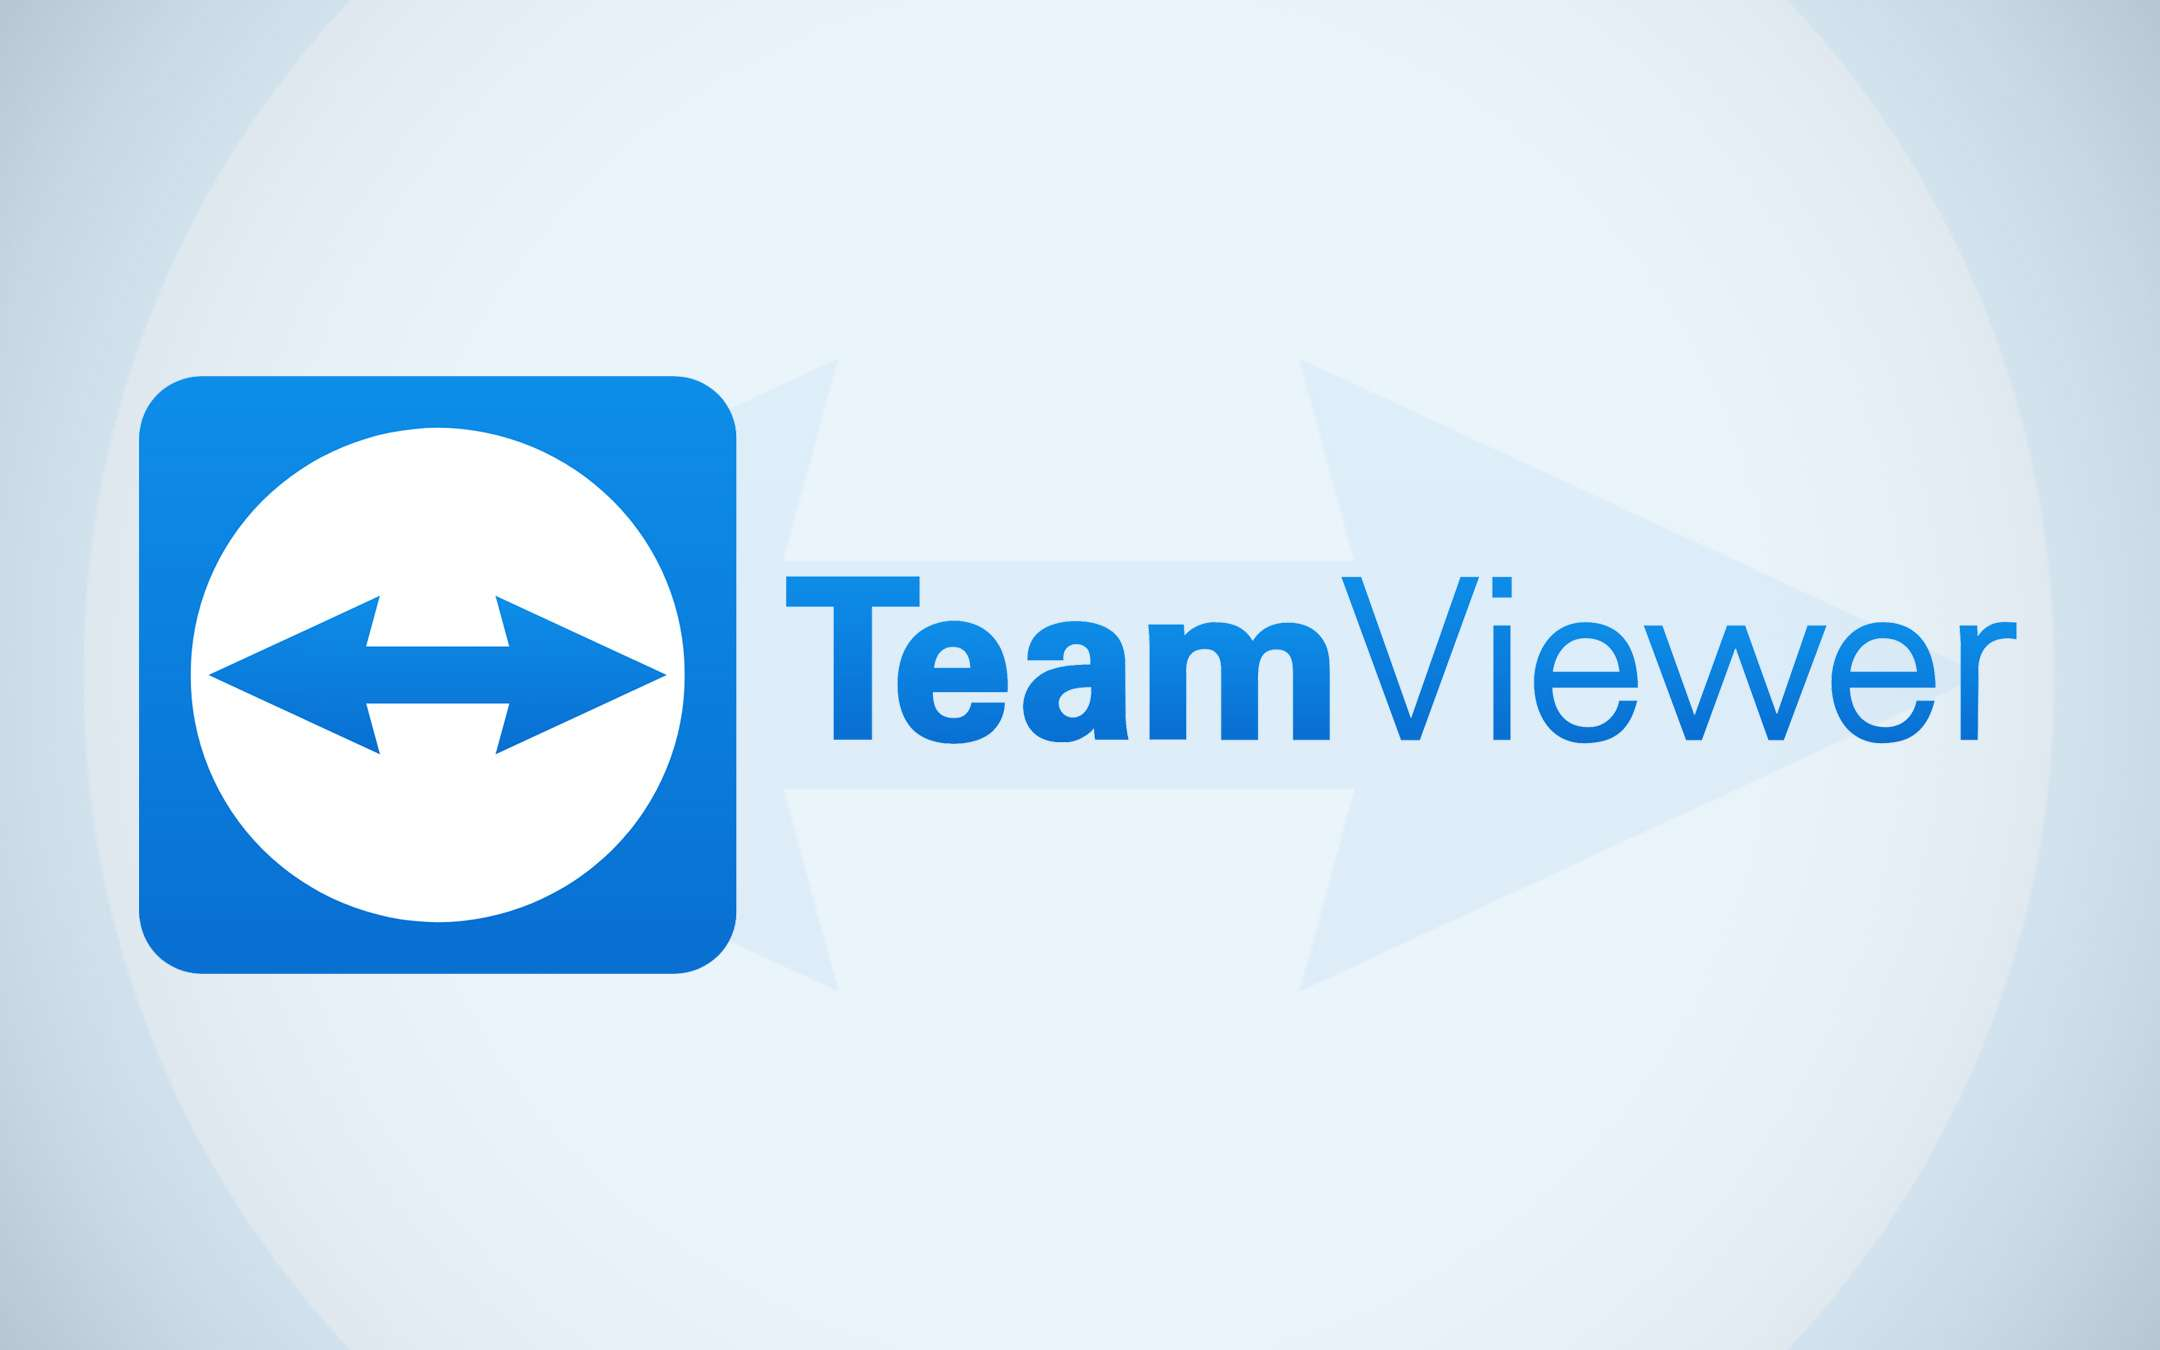 TeamViewer Pilot for Salesforce and ServiceNow